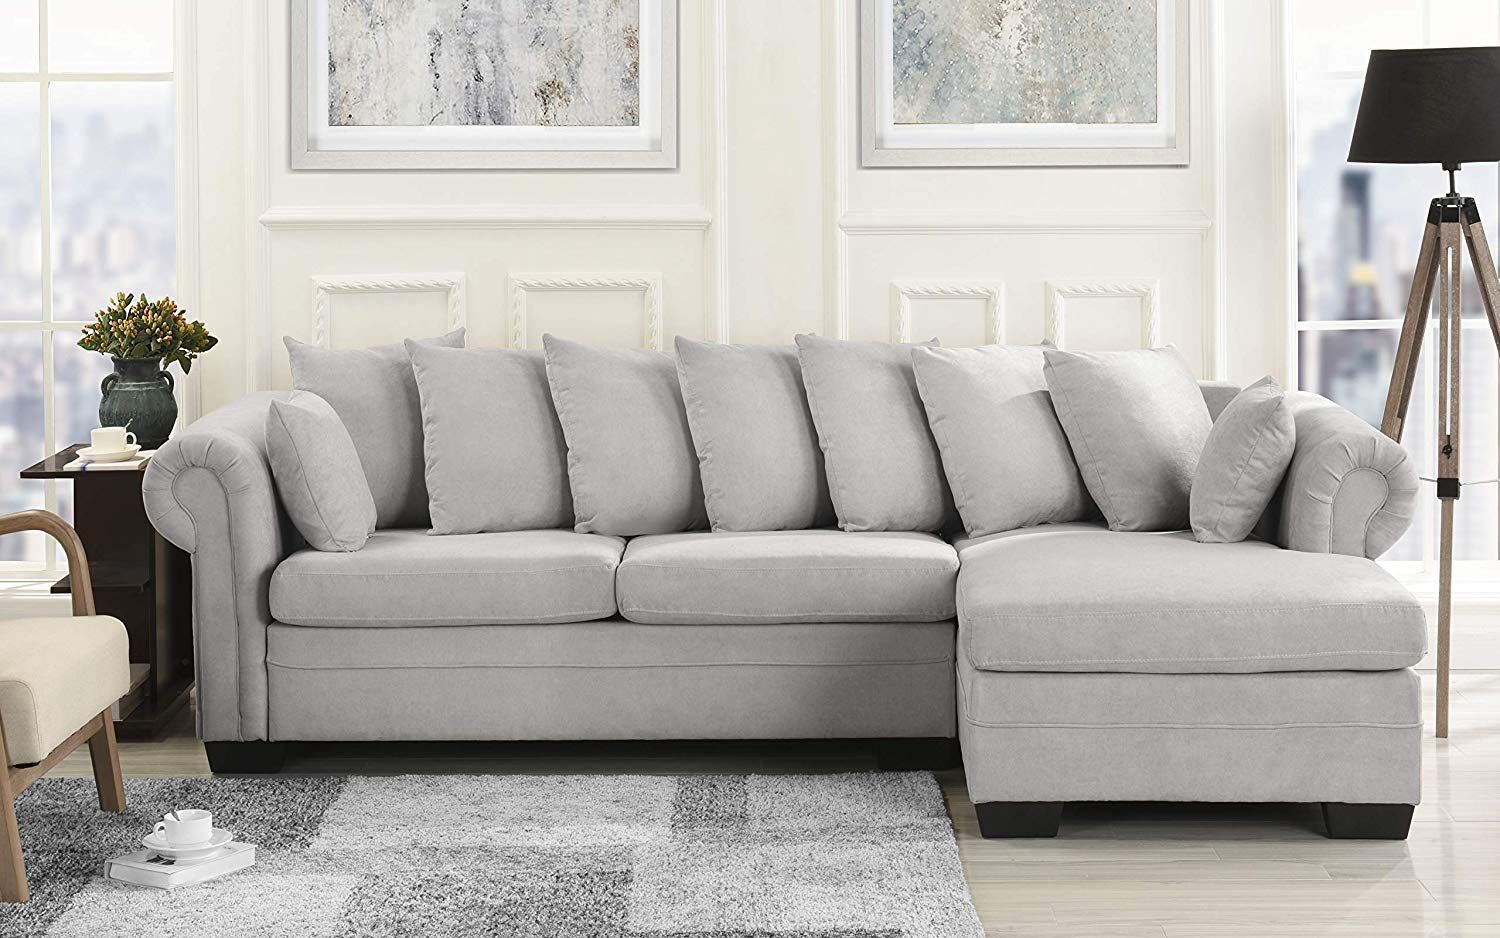 Modern Large Microfiber Sectional Sofa, L